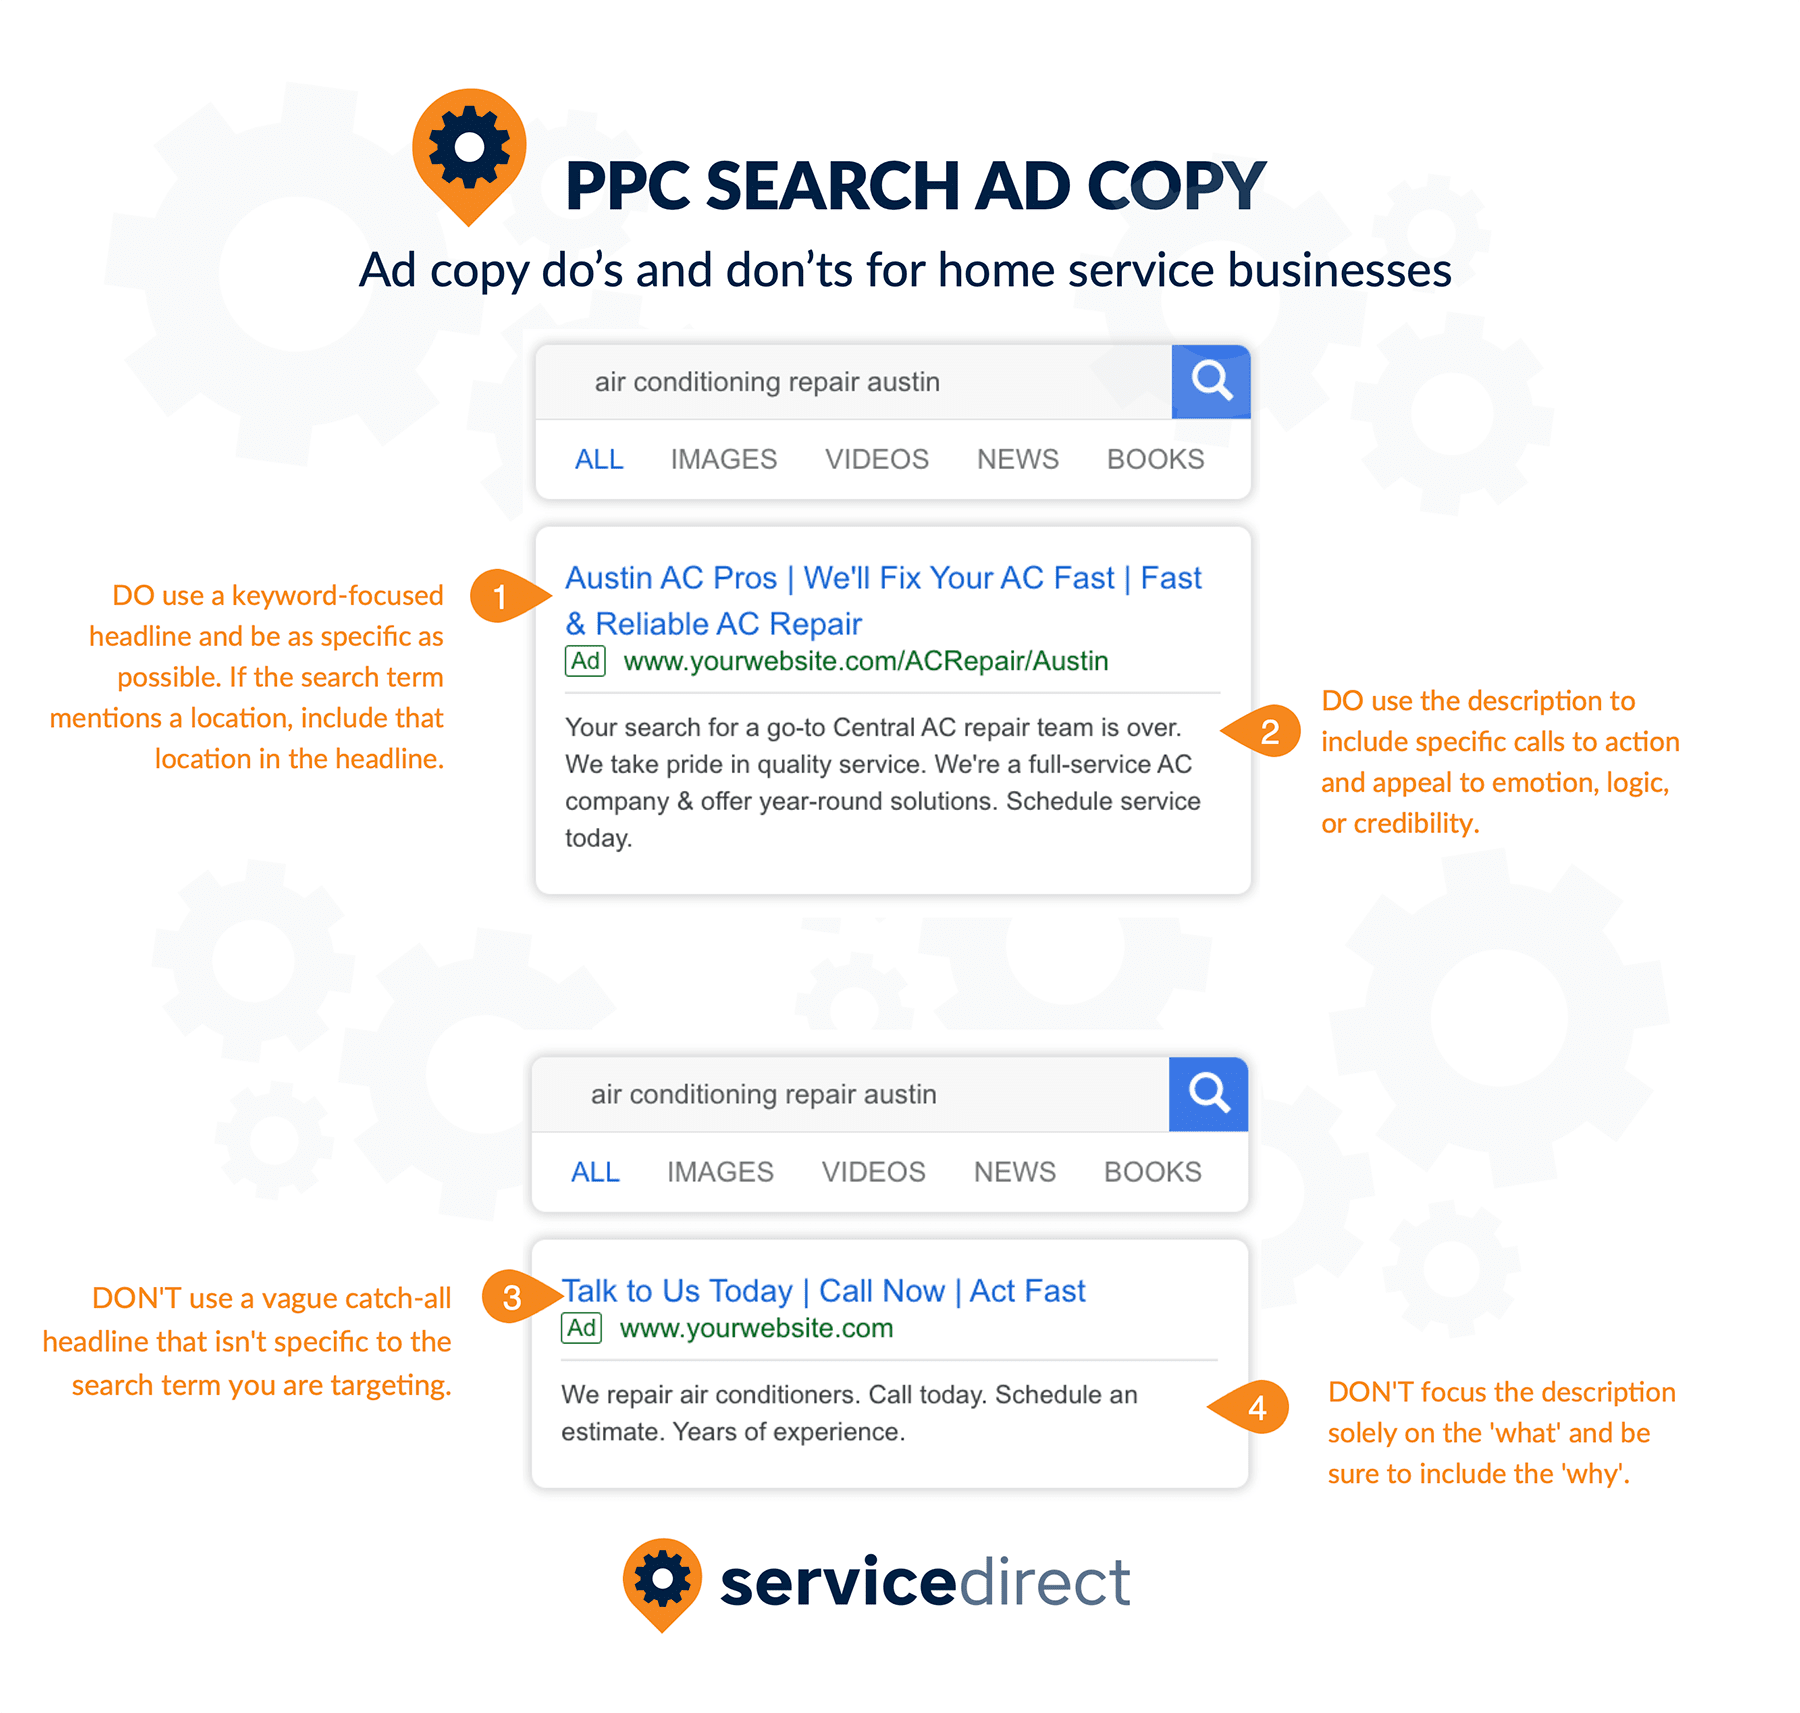 PPC Search Ad Copy for Home Improvement Businesses